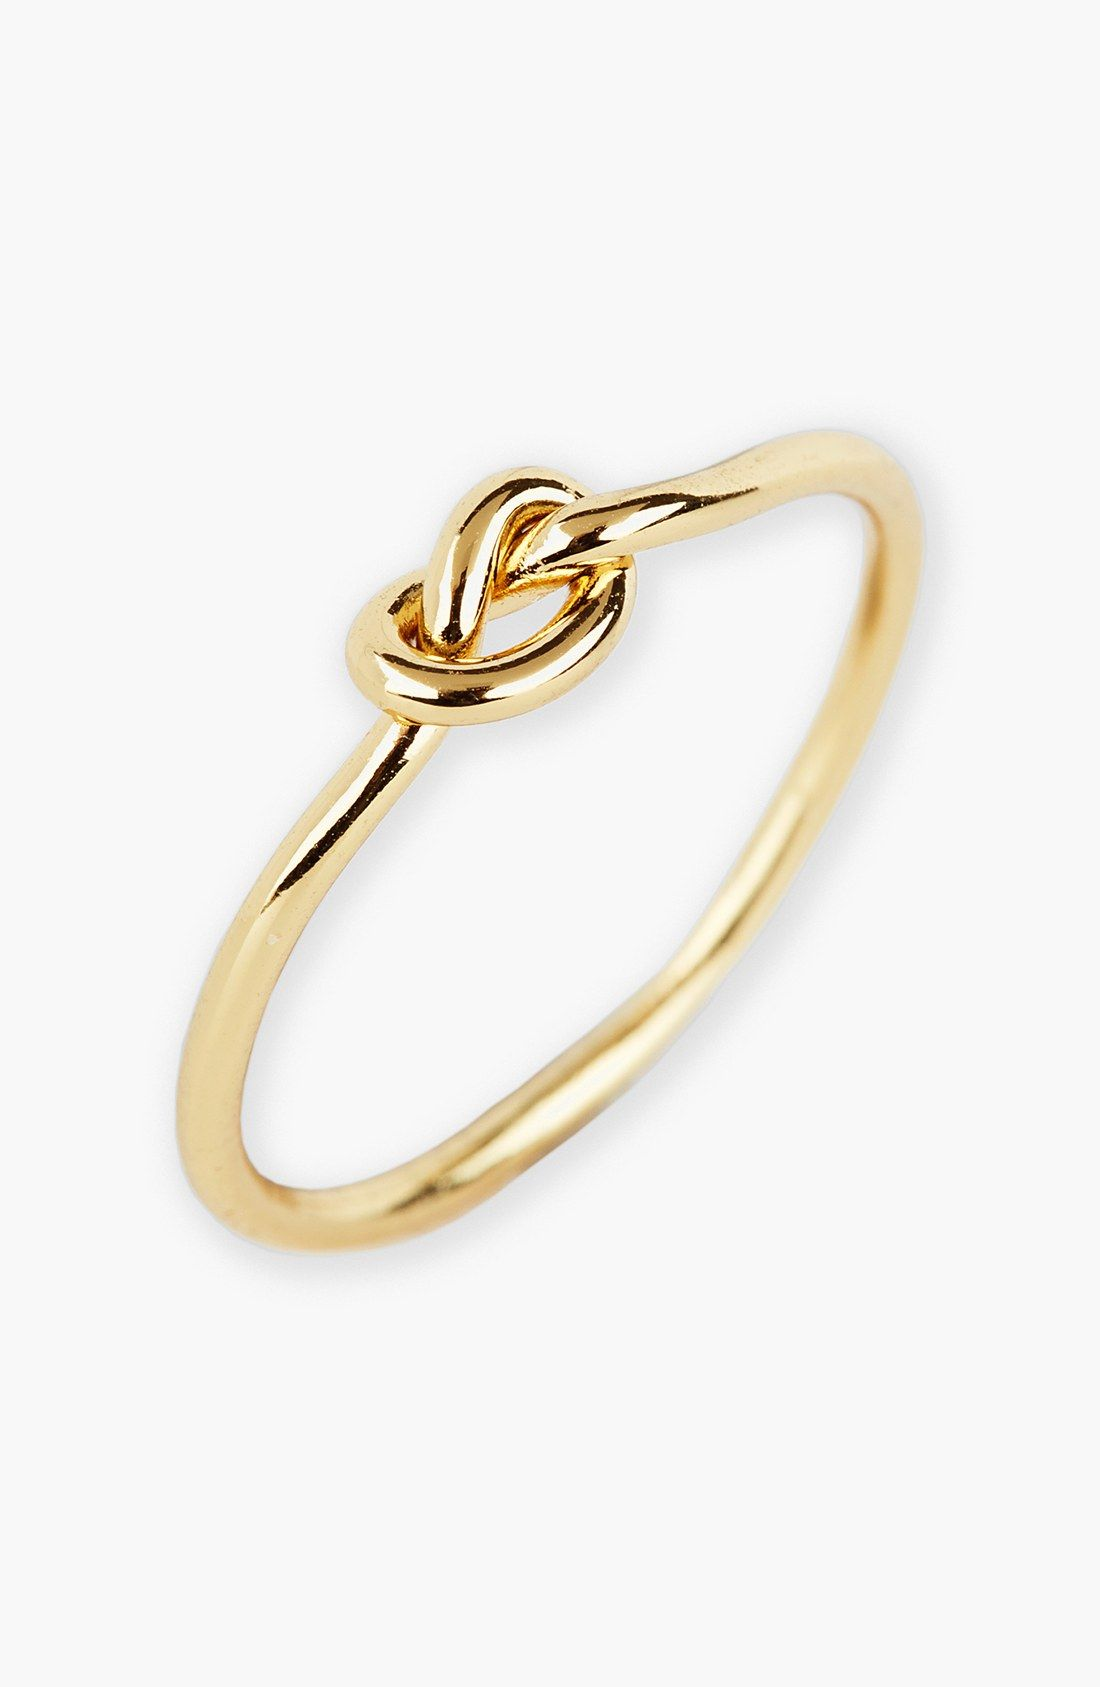 pieces of jewelry every girl will love knot rings ring and minis